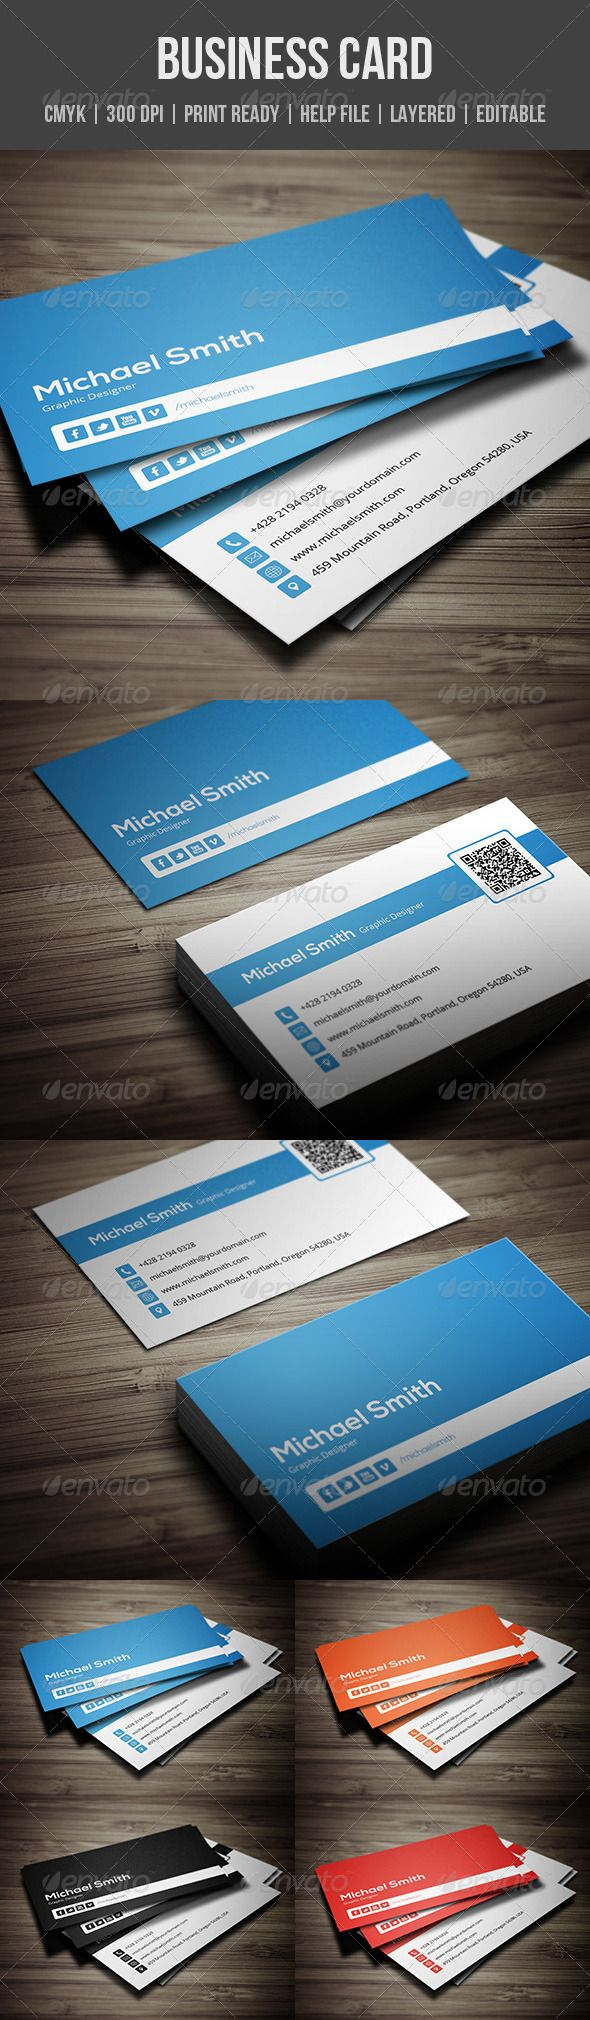 105 best print templates images on pinterest creative design personal business card magicingreecefo Choice Image